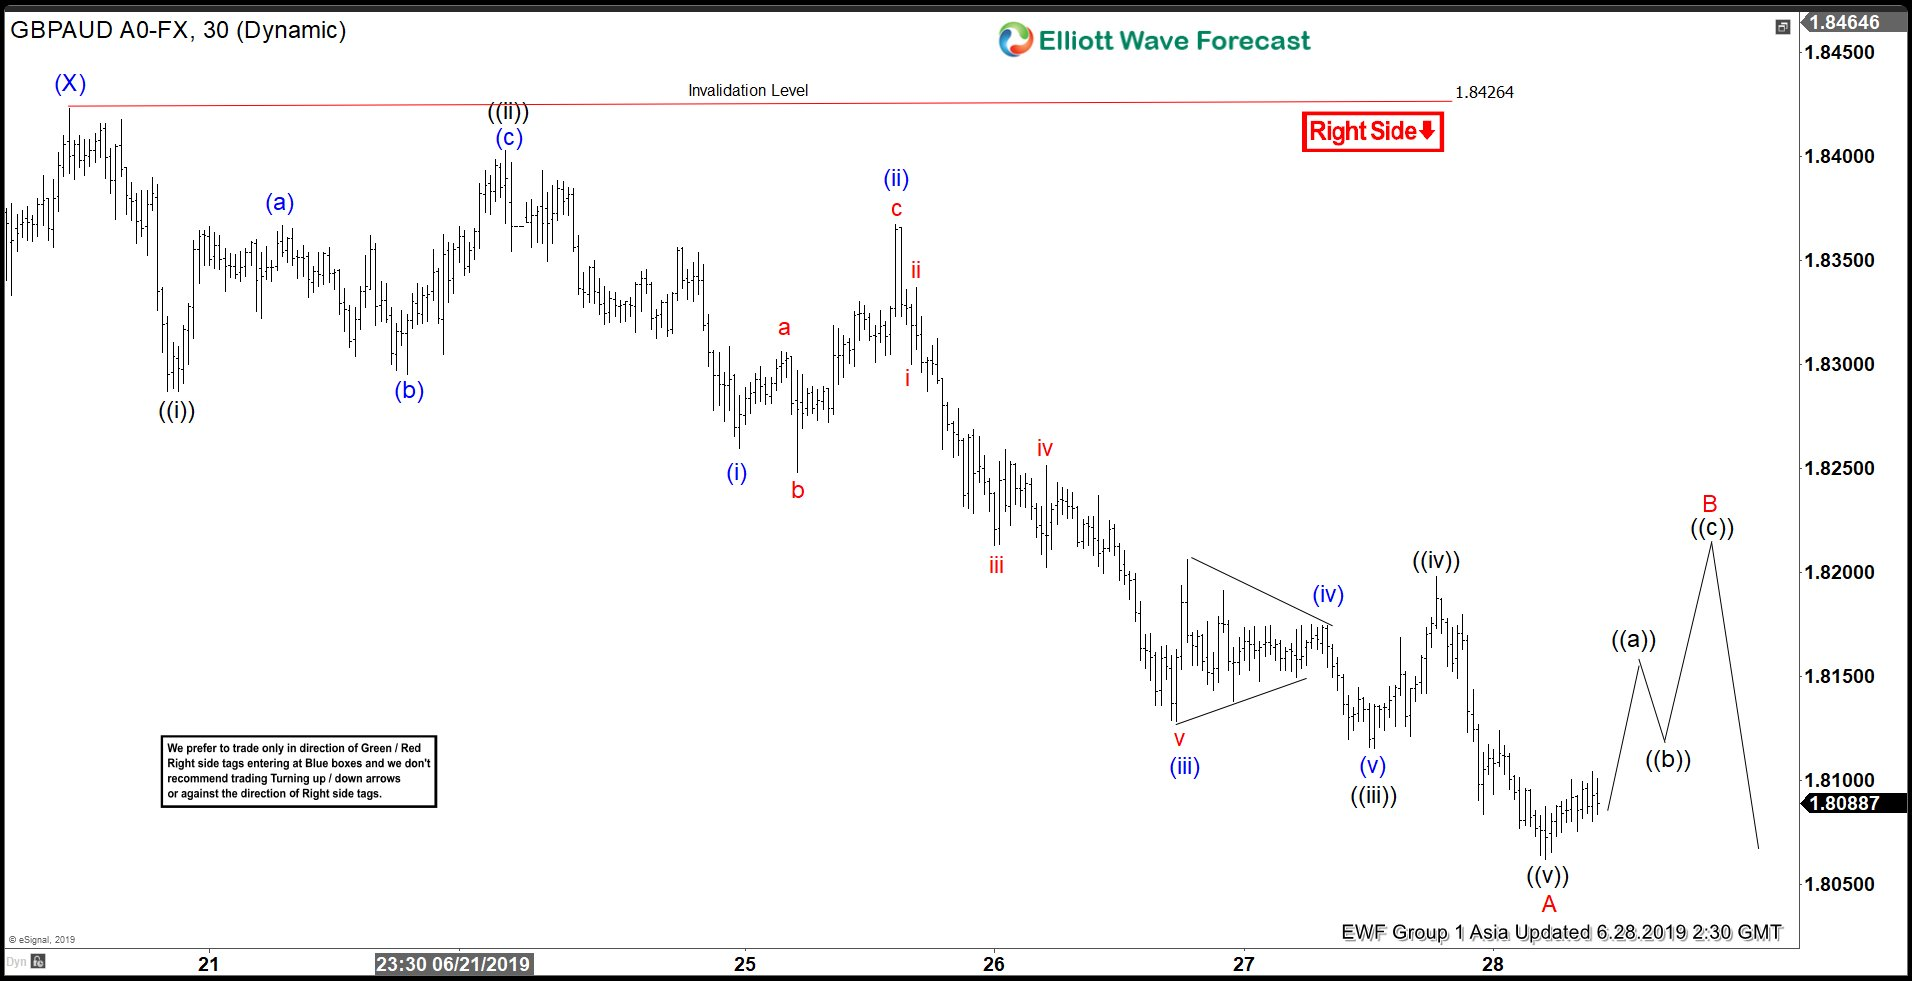 Elliott Wave View: GBPAUD Rally Should Find Sellers